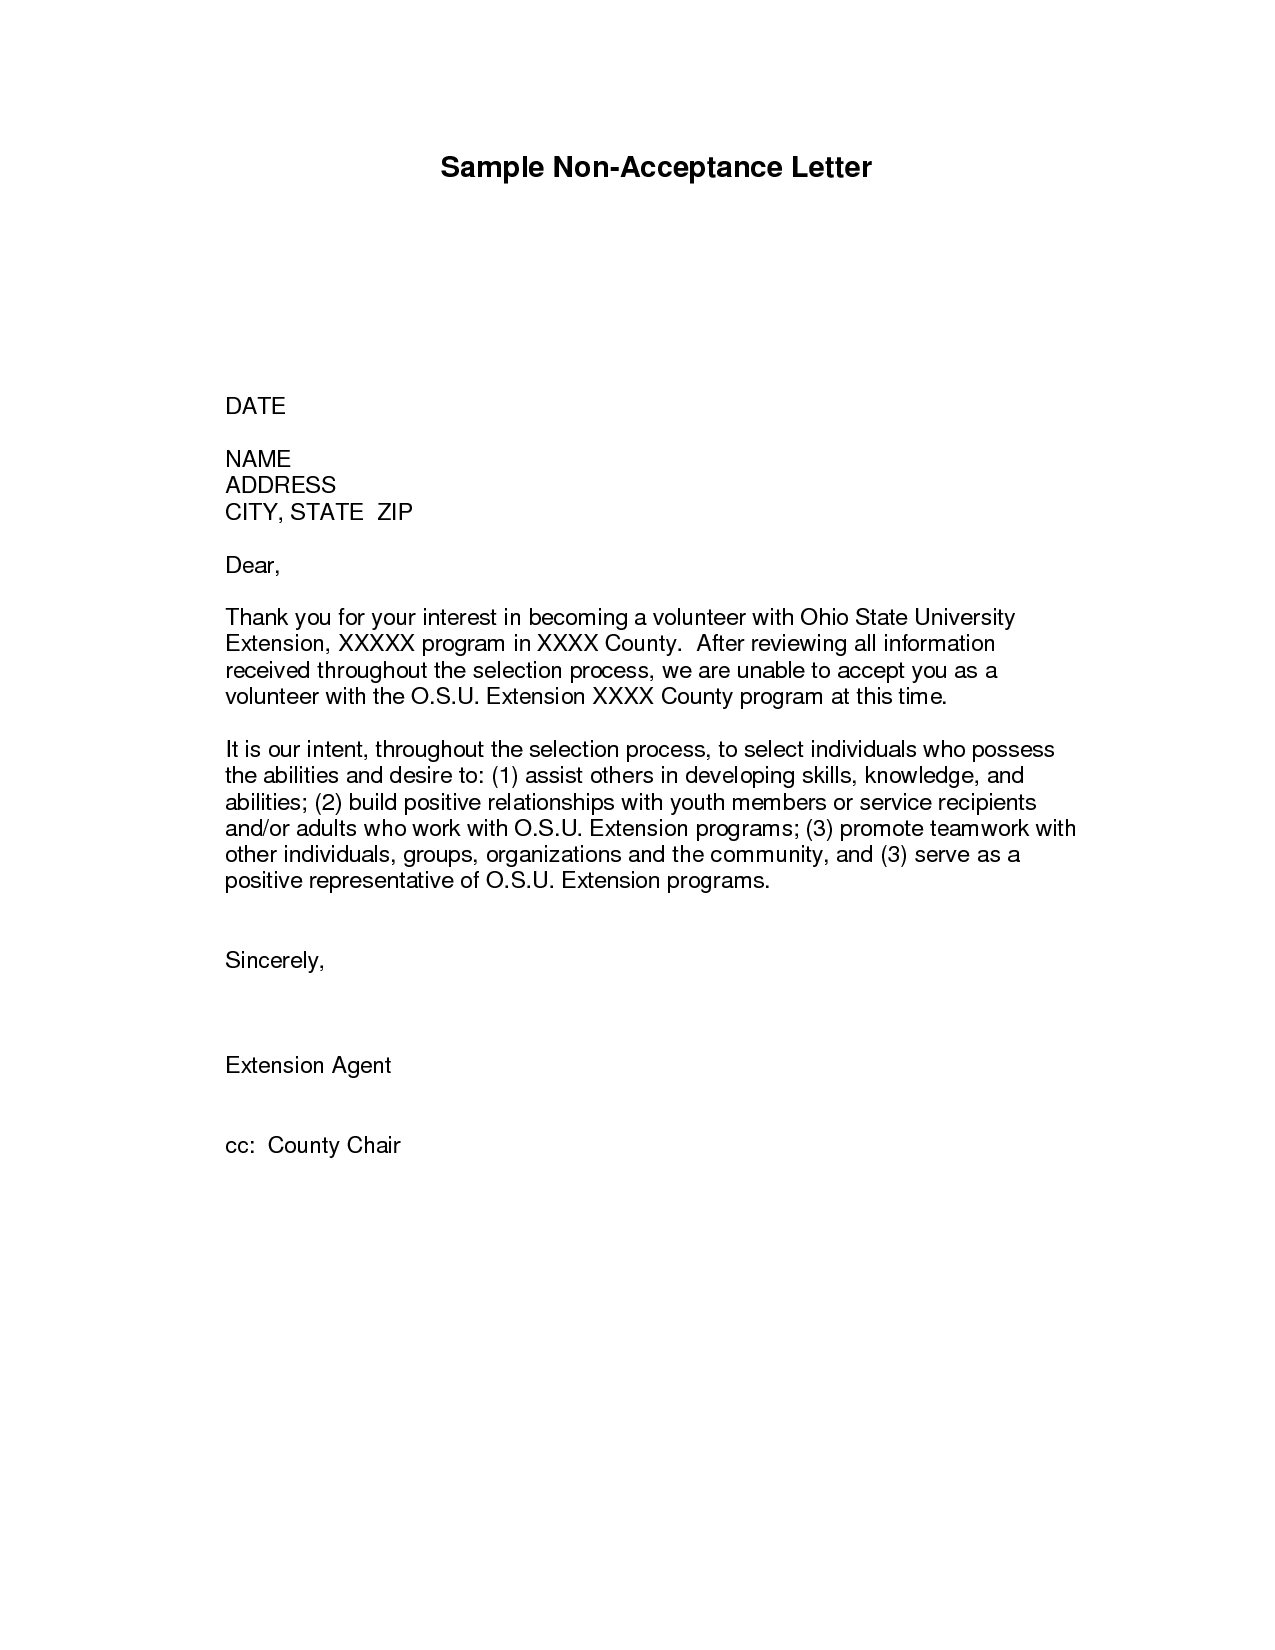 Business Proposal Acceptance Letter Template - Program Acceptance Letter Sample Letter Accepting An Offer Of